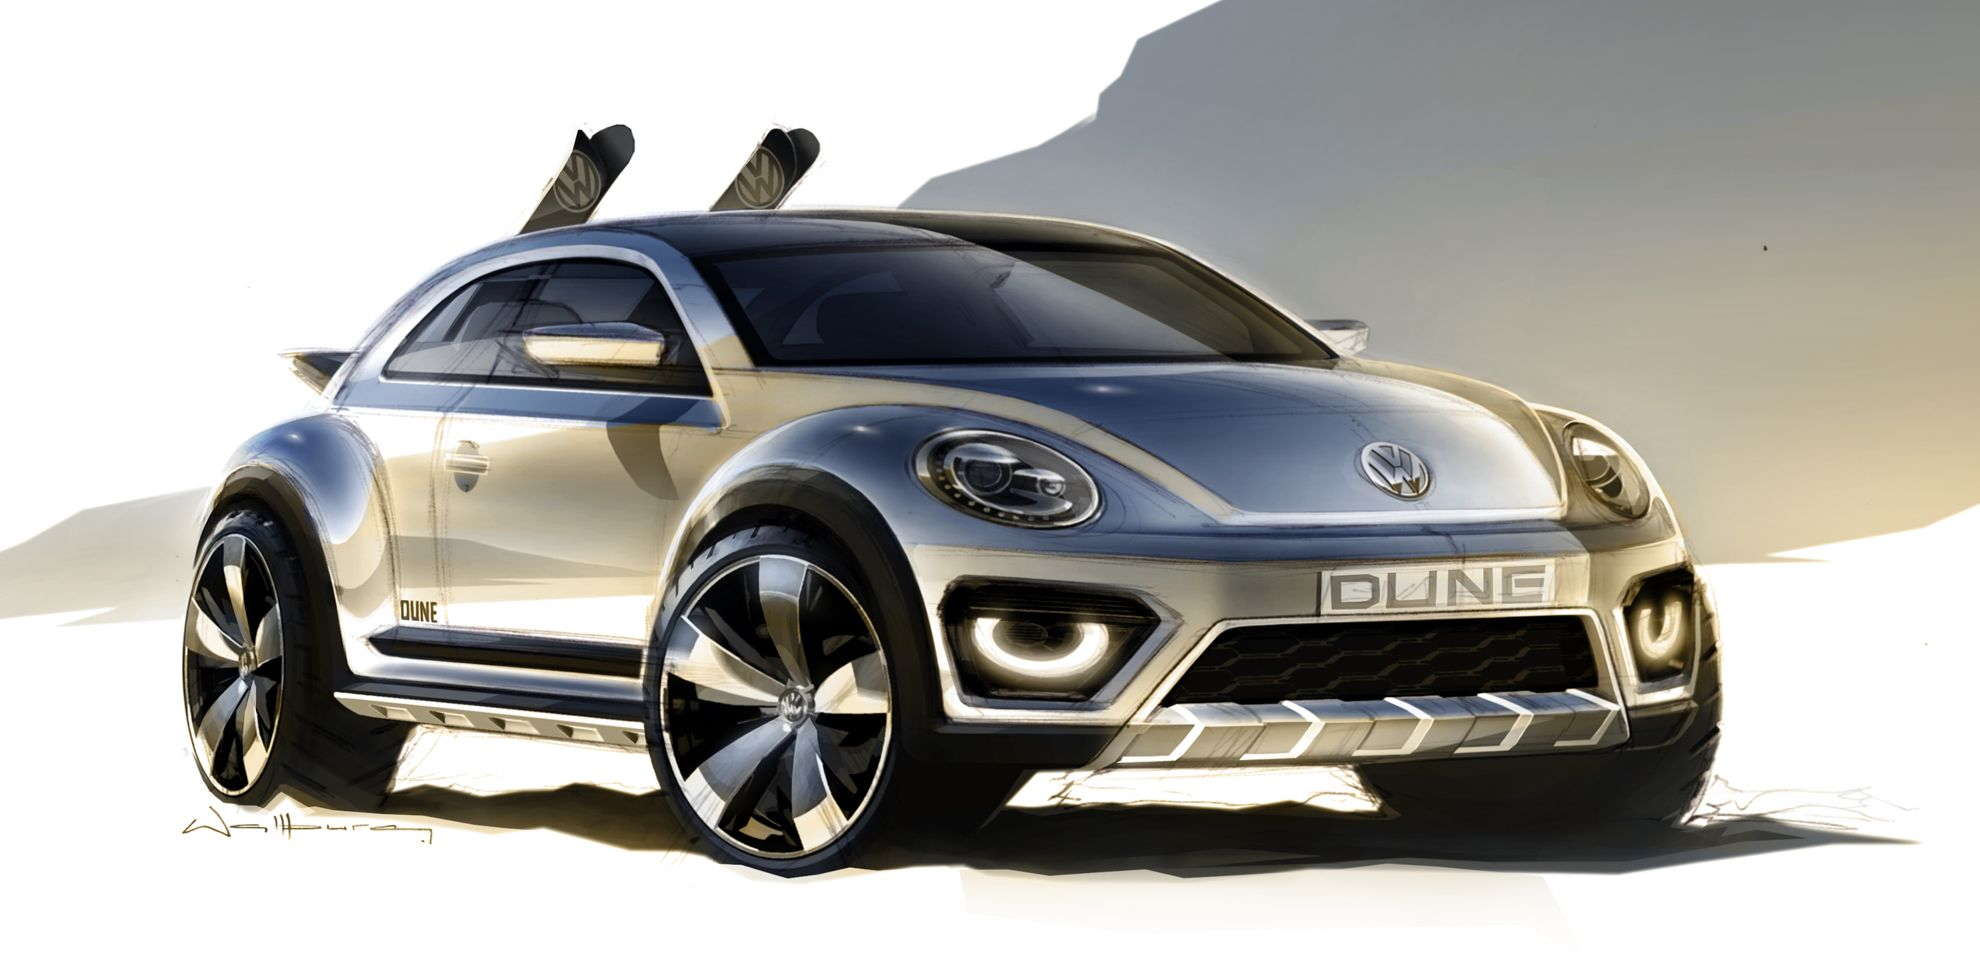 Further information on and images of the beetle dune concept will be